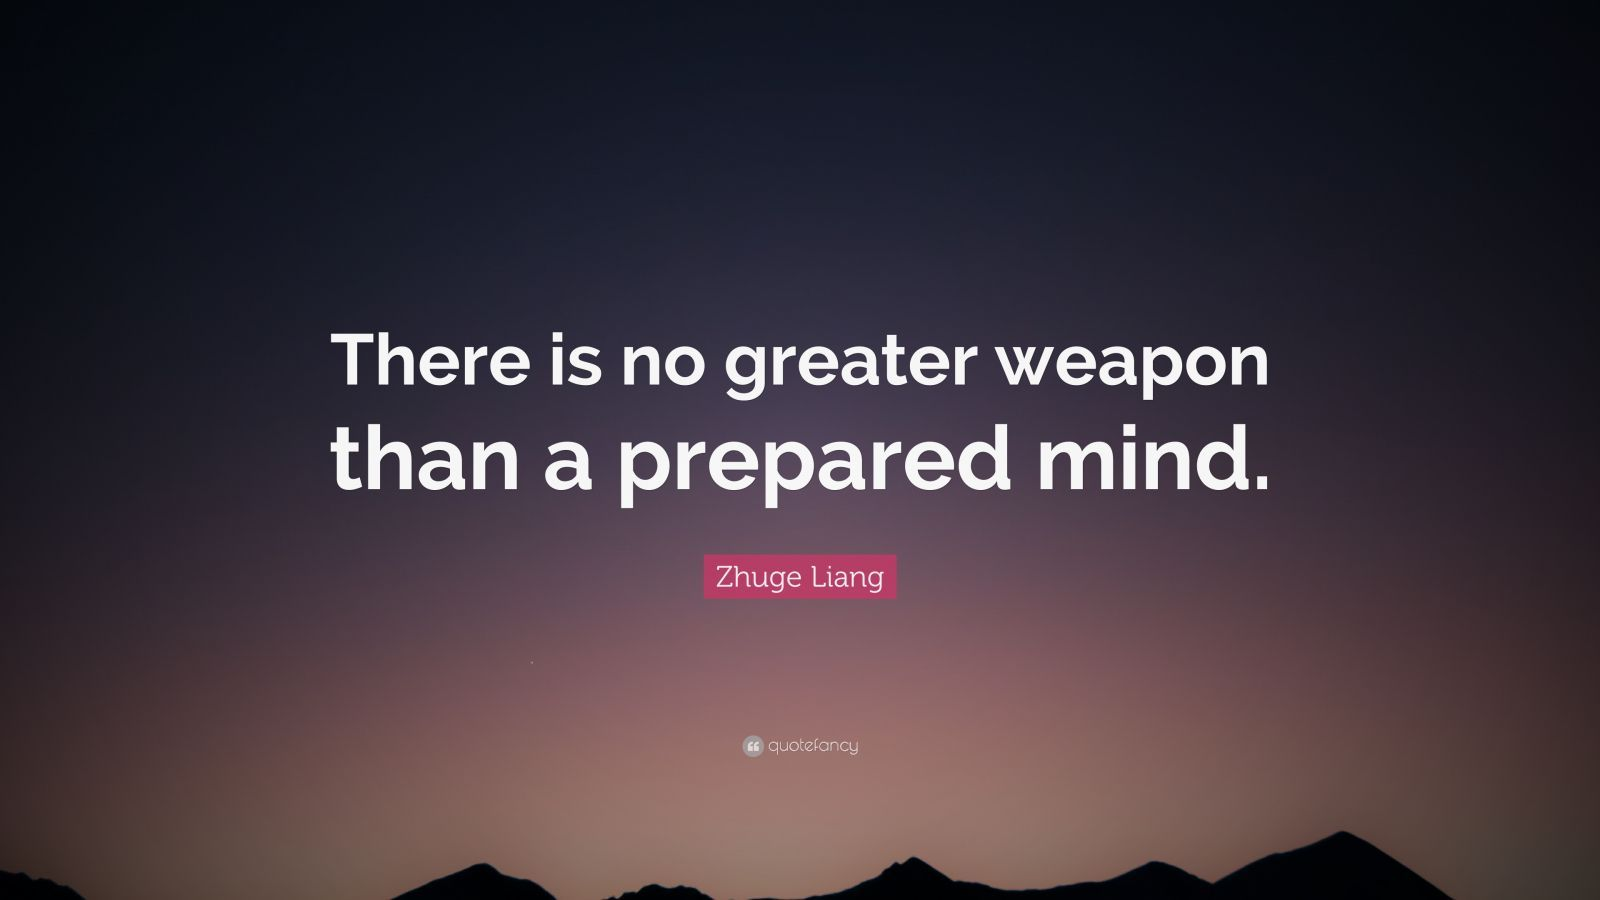 Zhuge Liang Quote U201cthere Is No Greater Weapon Than A Prepared Mind U201d 12 Wallpapers Quotefancy In 2020 Quotes Quotes Romantis Wise